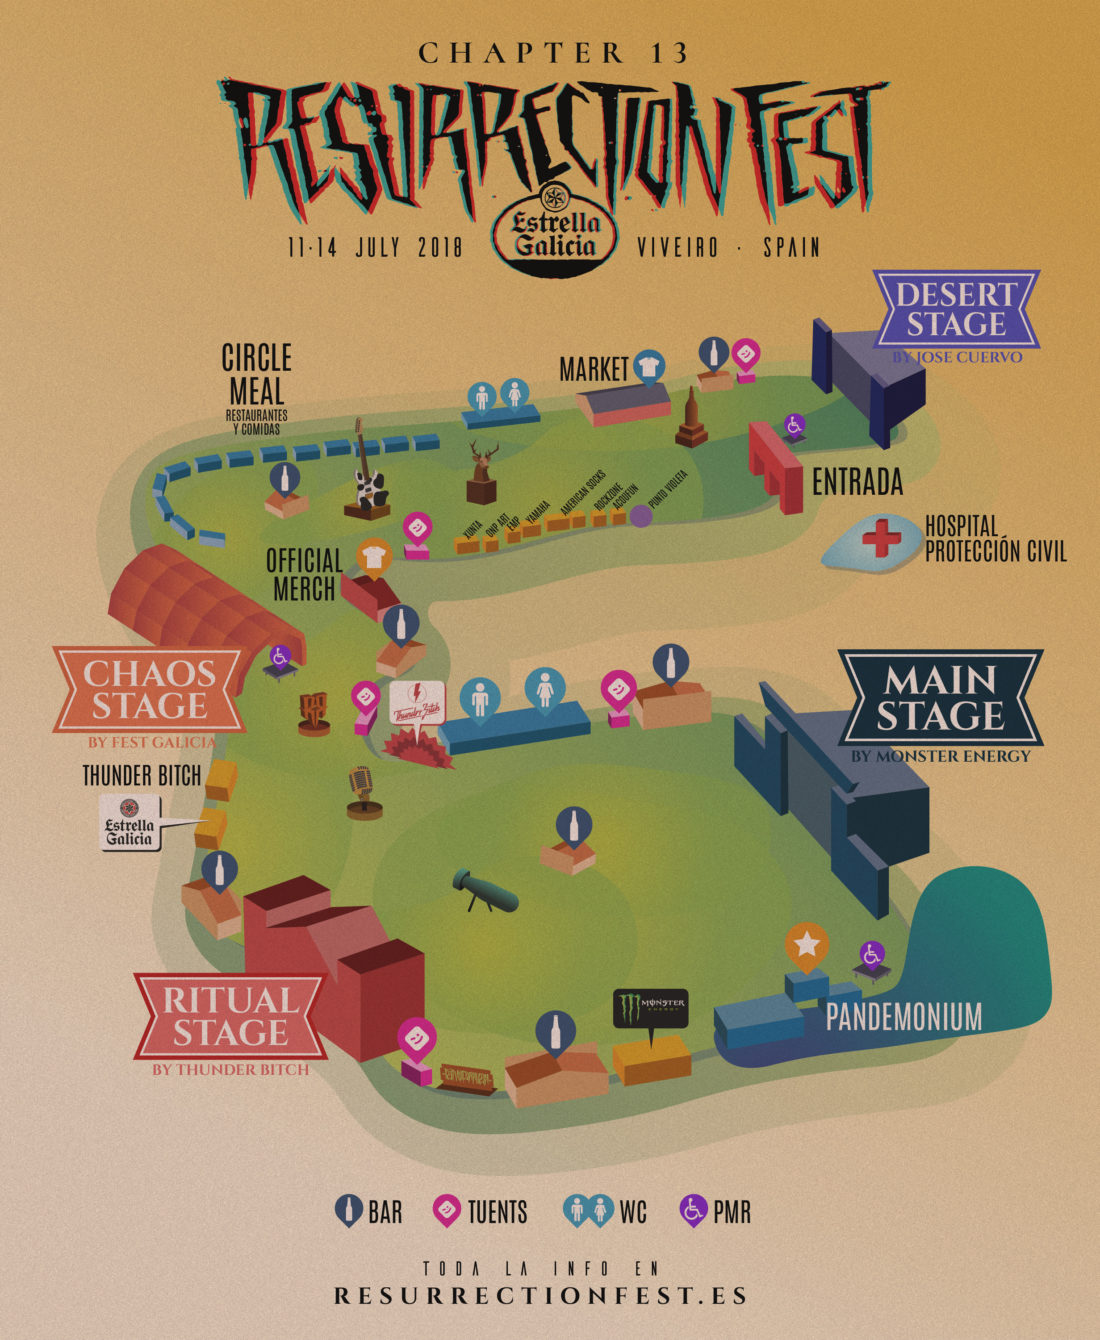 Mapa de la Resurrection Fest City 2018